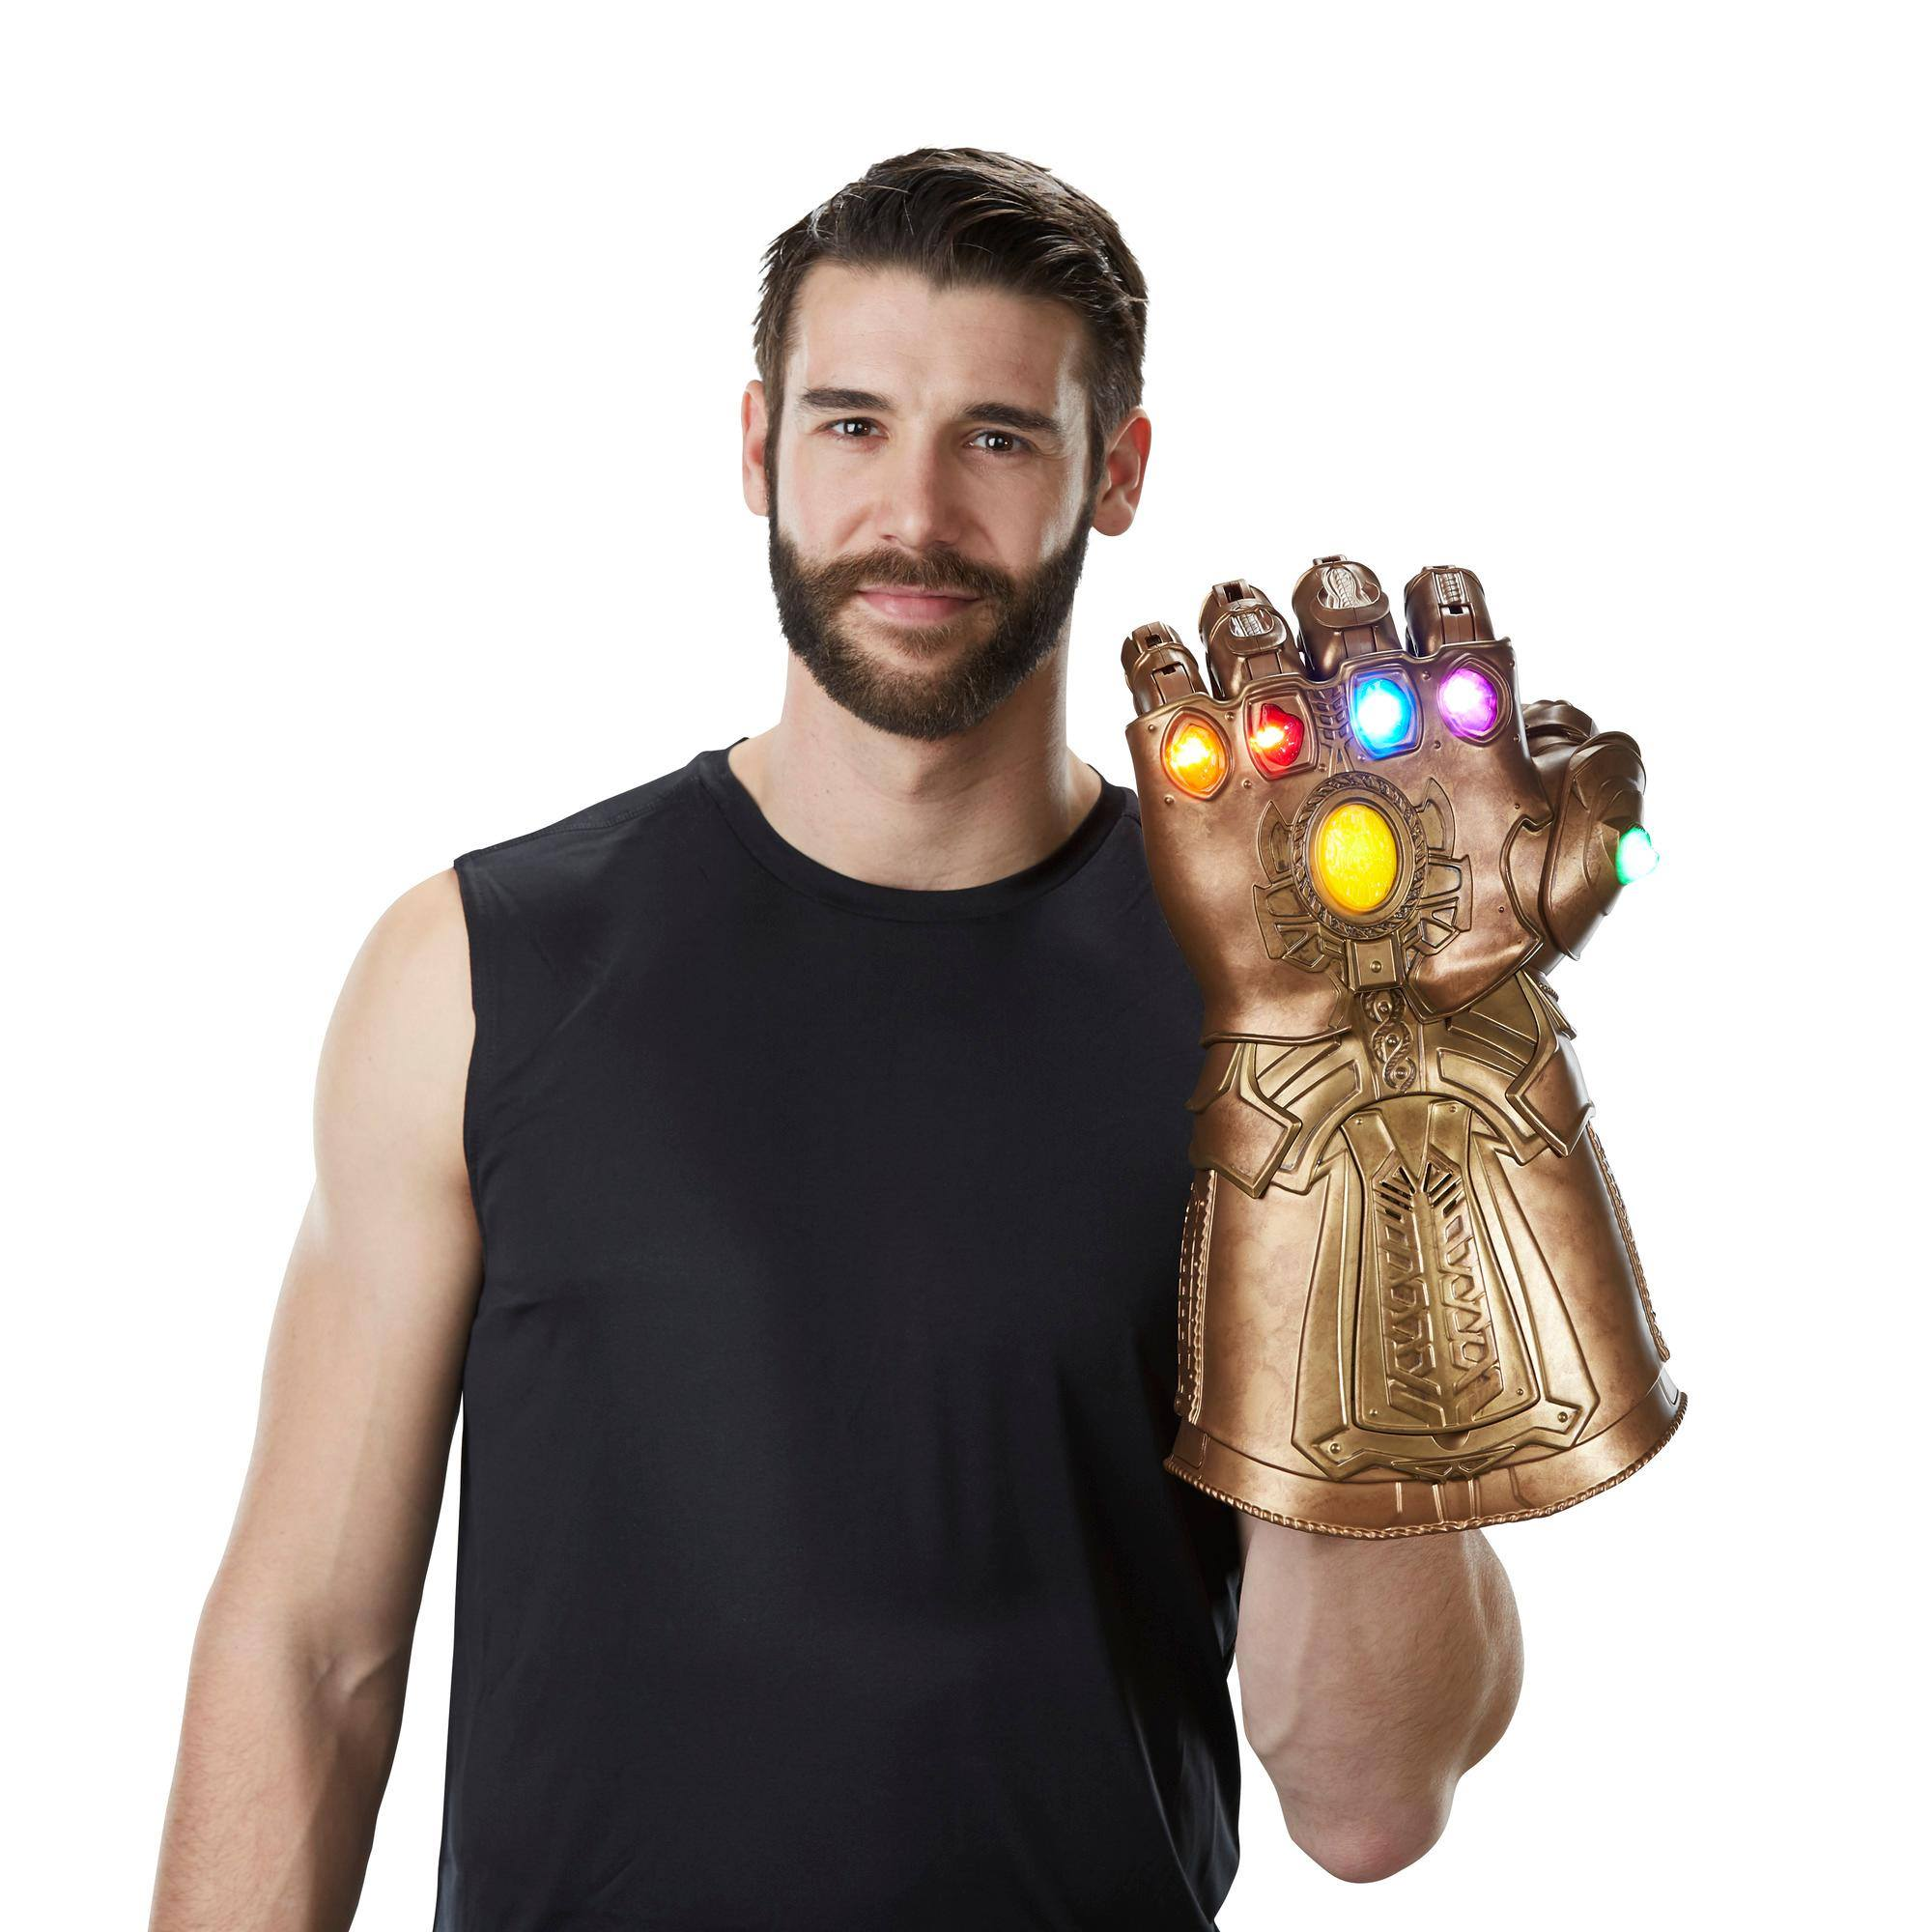 Hasbro - Marvel Legends - Avengers: Infinity War - Infinity Gauntlet Articulated Electronic Fist (2nd Batch)